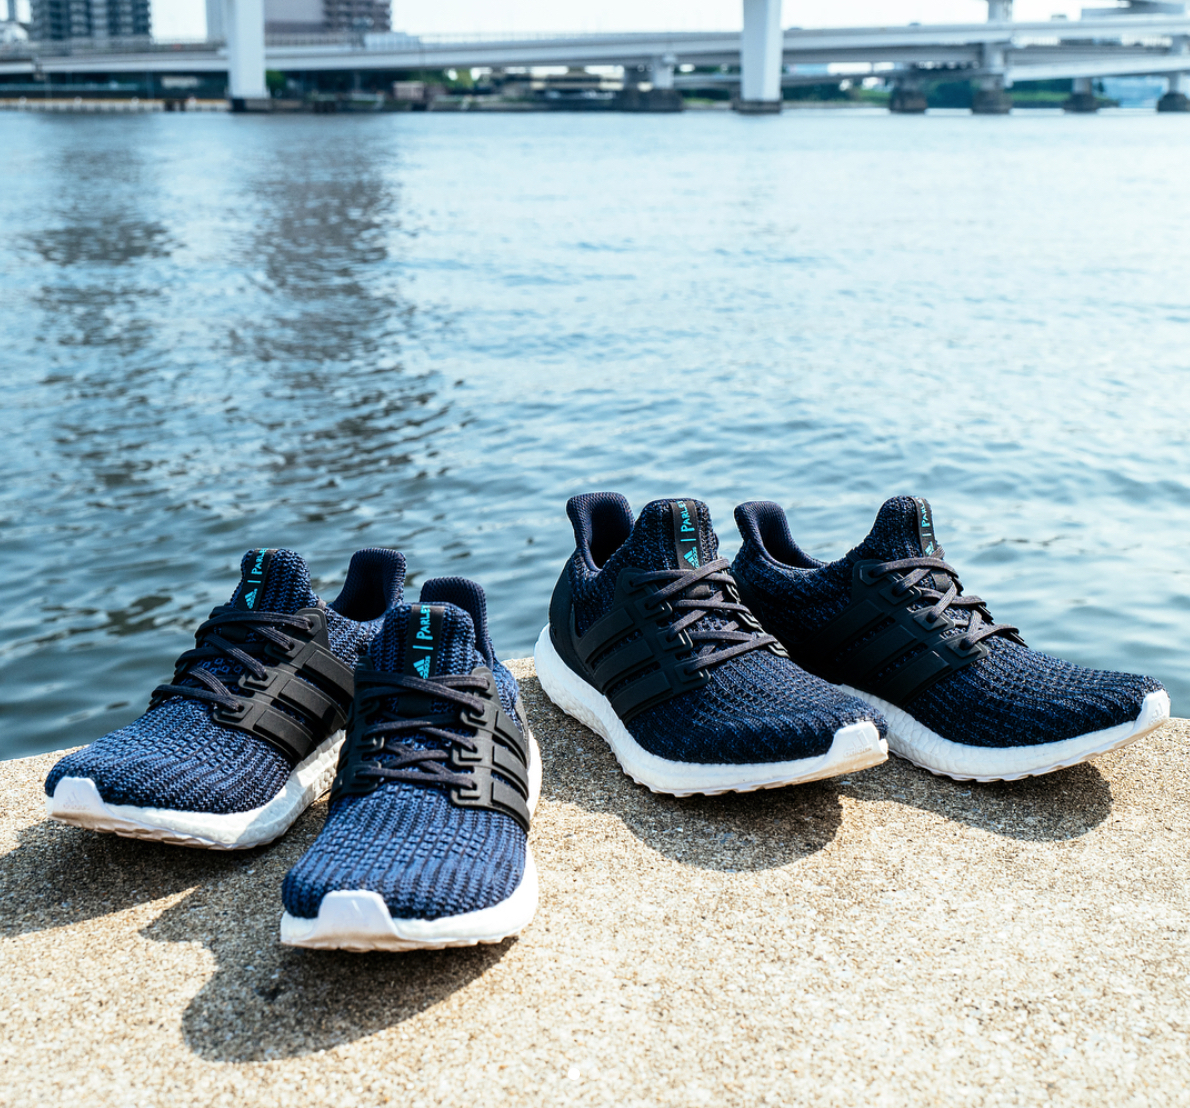 The adidas Ultra Boost 4.0 Parley in